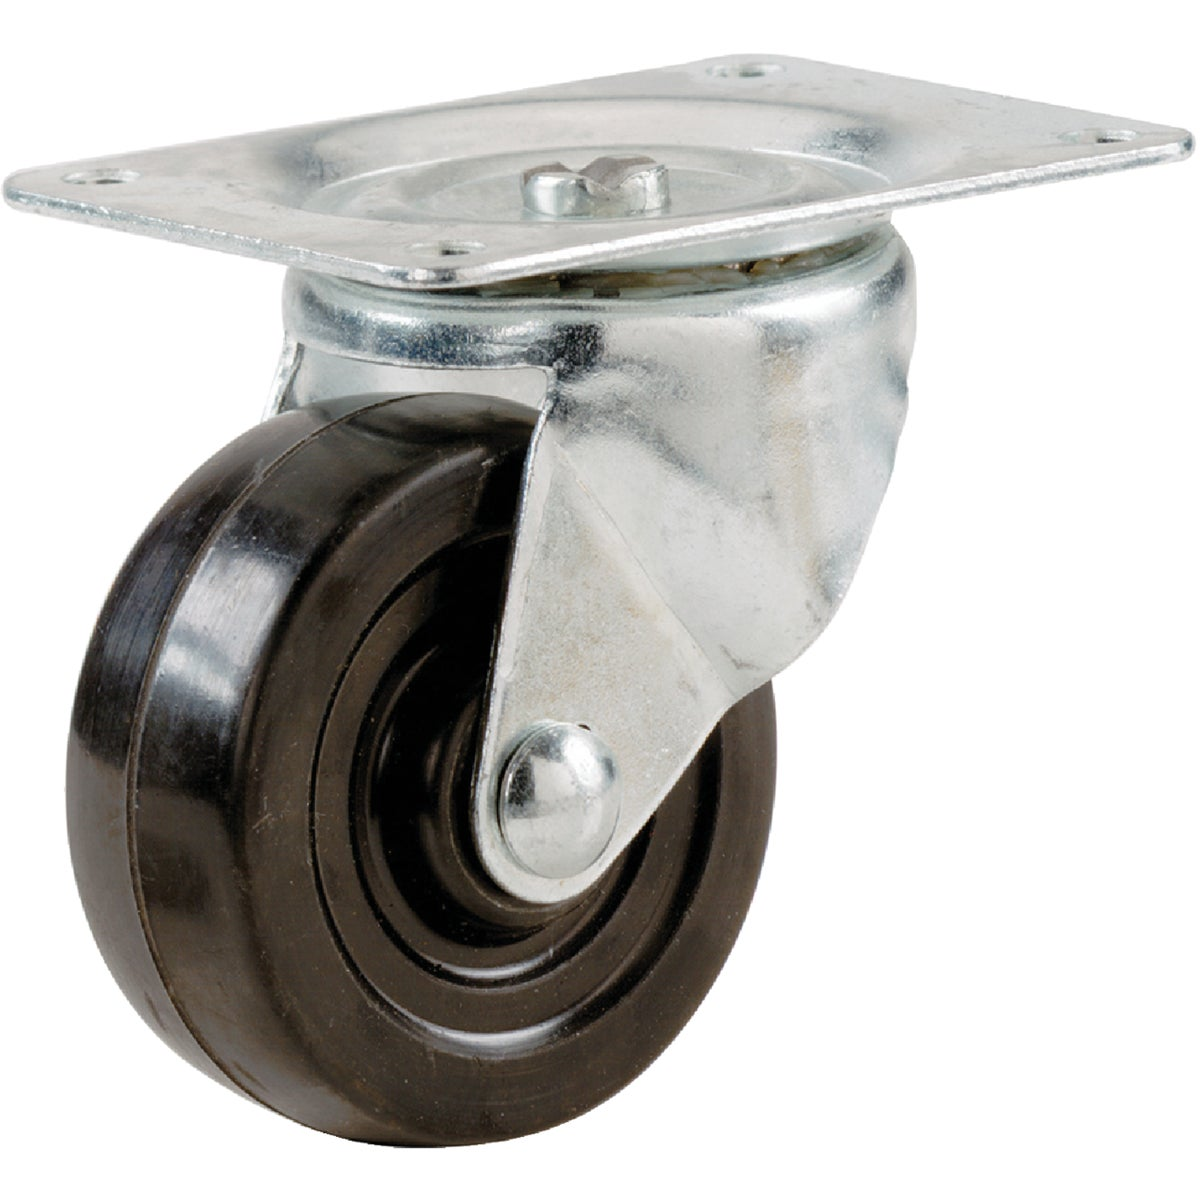 "5"" RUBBER SWIVEL CASTER - 9787 by Shepherd Hardware"